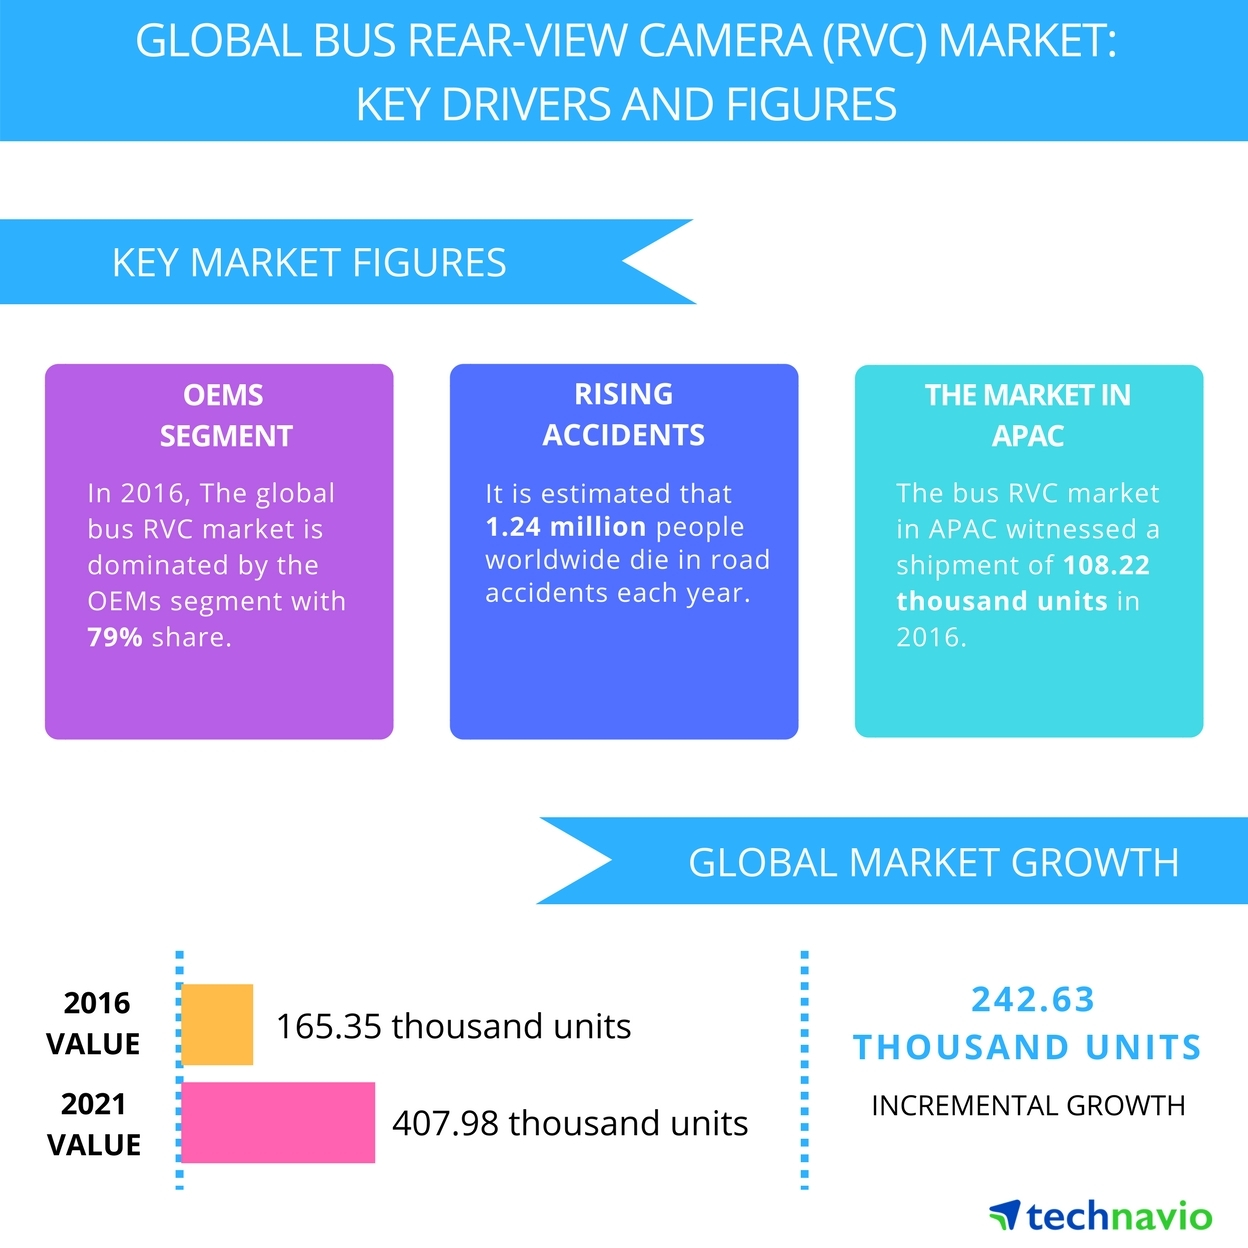 Technavio has published a new report on the global bus rear-view camera (RVC) market from 2017-2021. (Graphic: Business Wire)